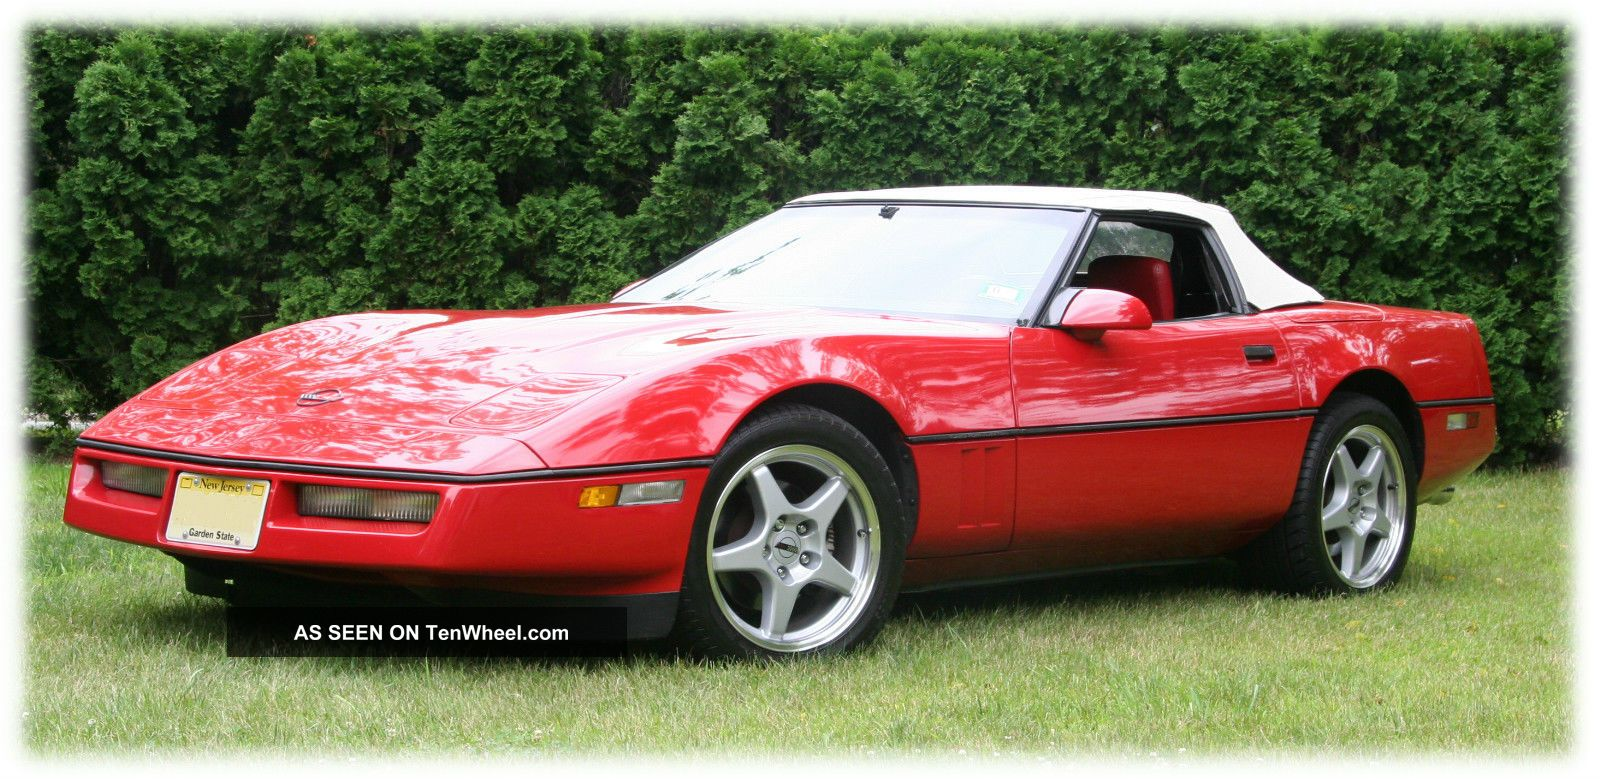 Chevrolet Corvette 5.7 1988 photo - 8